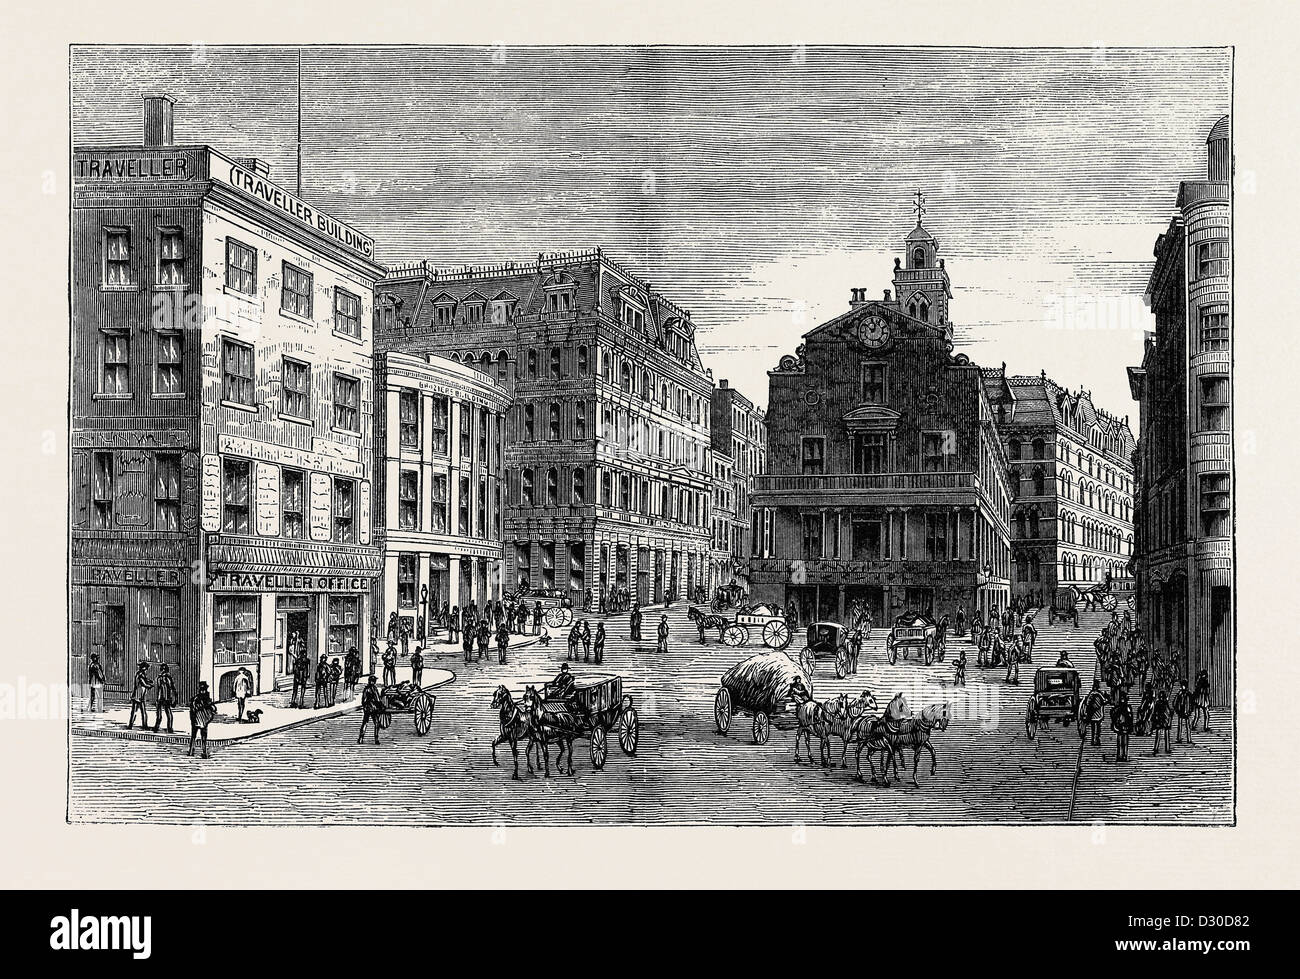 VIEWS AND PUBLIC BUILDINGS IN THE CITY OF BOSTON: VIEW AT THE HEAD OF STATE STREET - Stock Image